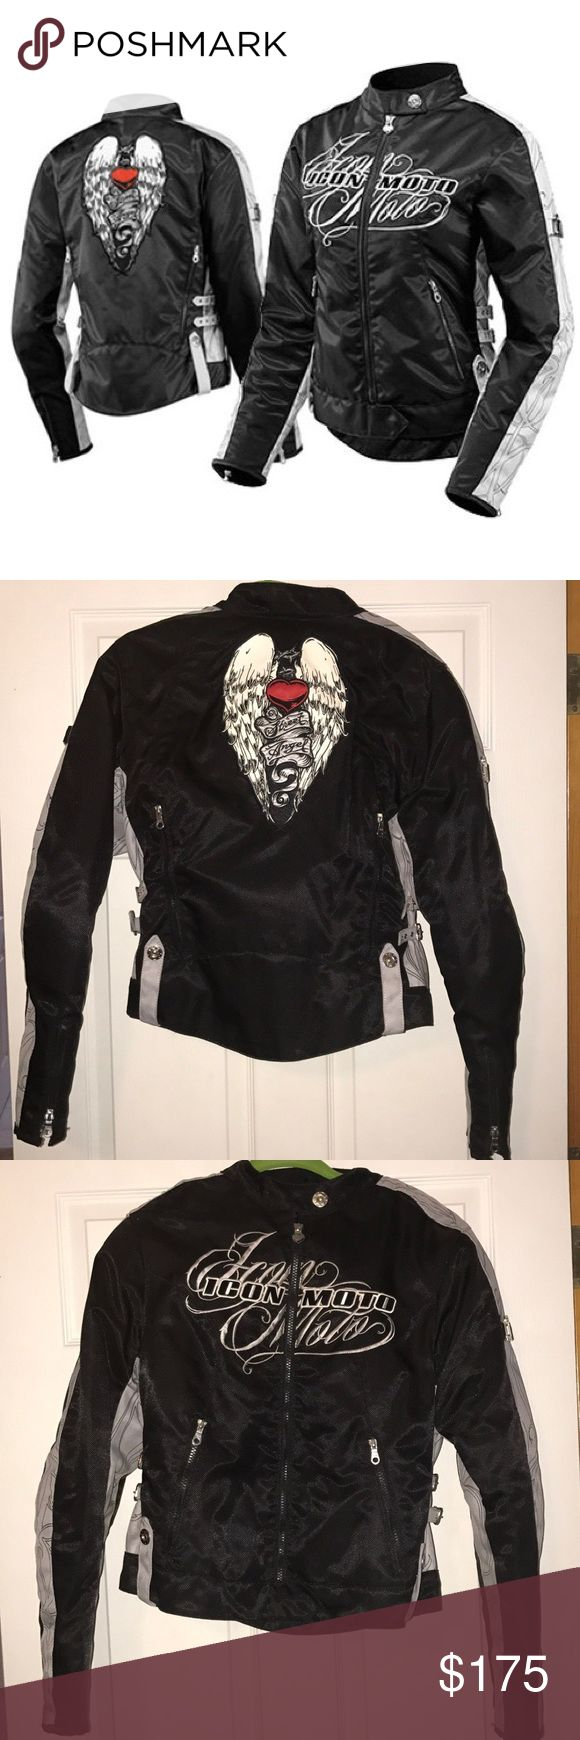 ICON motorcycle jacket Street Angel $175 OBO | Size: Large | ••WORN ONLY 2 TIMES!••  Durable Nylon Textile Chassis. Removable CE Field Armor Impact Protector Elbow. Removable CE Field Armor Impact Protector Shoulder. Removable Dual-Density Foam Back Pad. Zippered Intake and Exhaust Vents for Cooling. Removable Insulated Liner. Custom Buckle Adjustment System. Icon Women's Sport Fit. ICON Jackets & Coats Utility Jackets